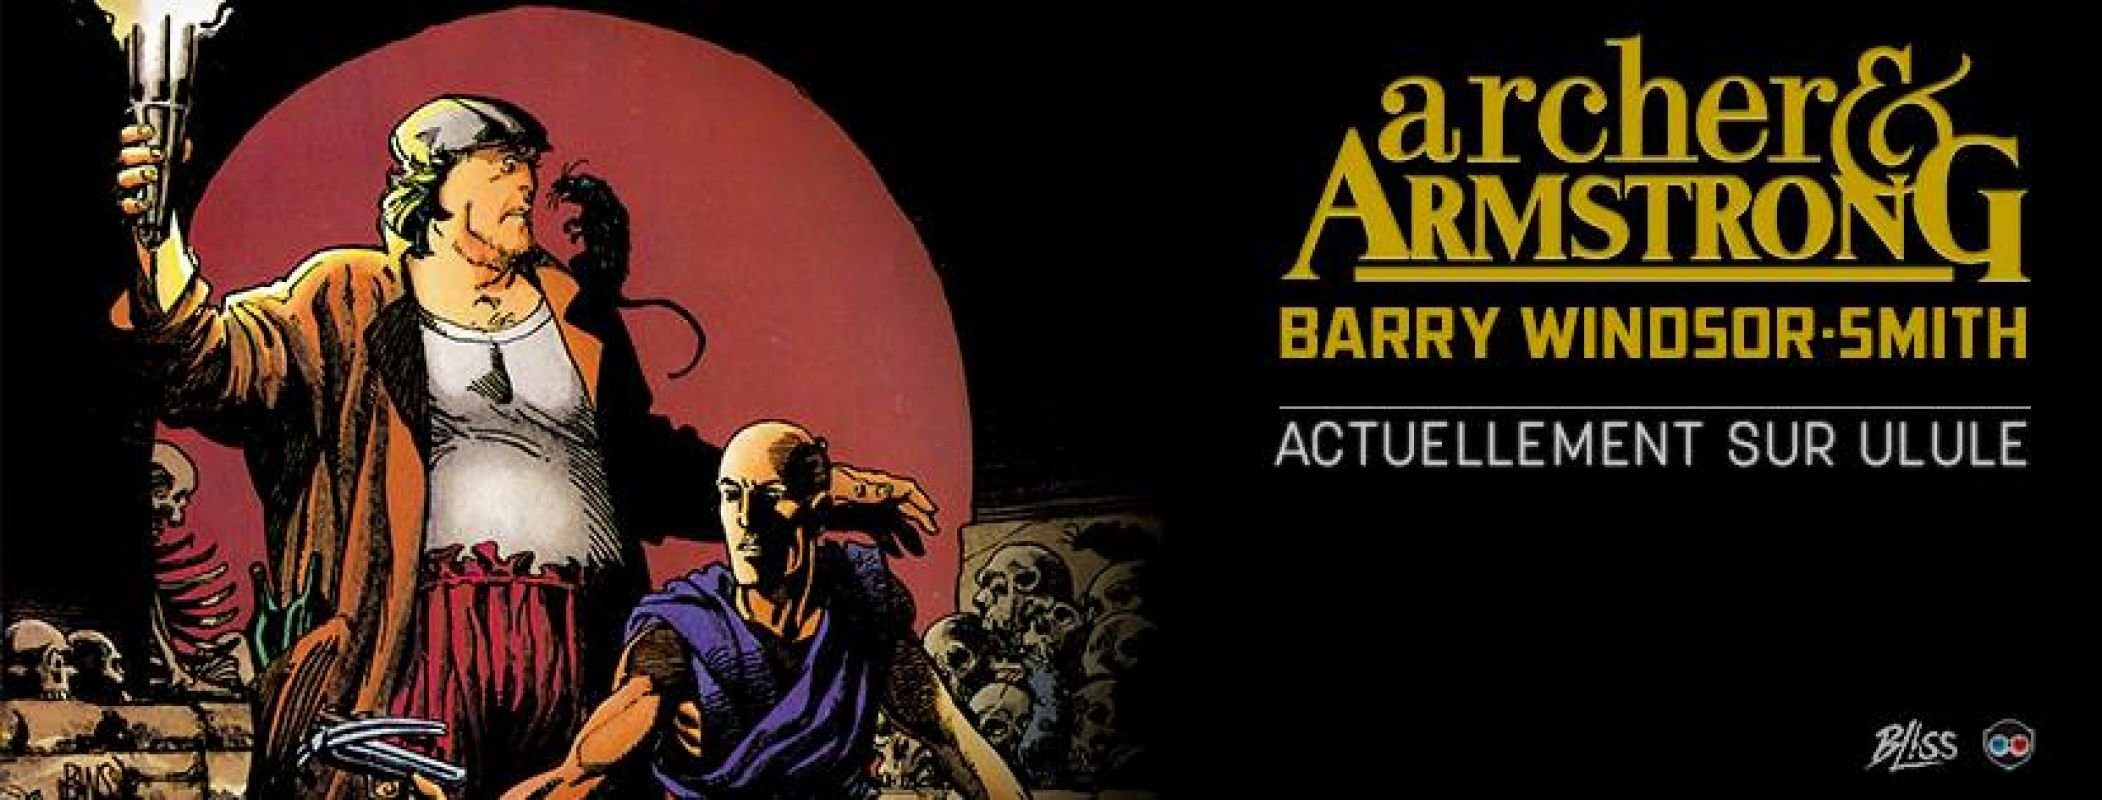 Archer & Armstrong par Barry Windsor-Smith : le 1er projet ulule de Bliss Editions